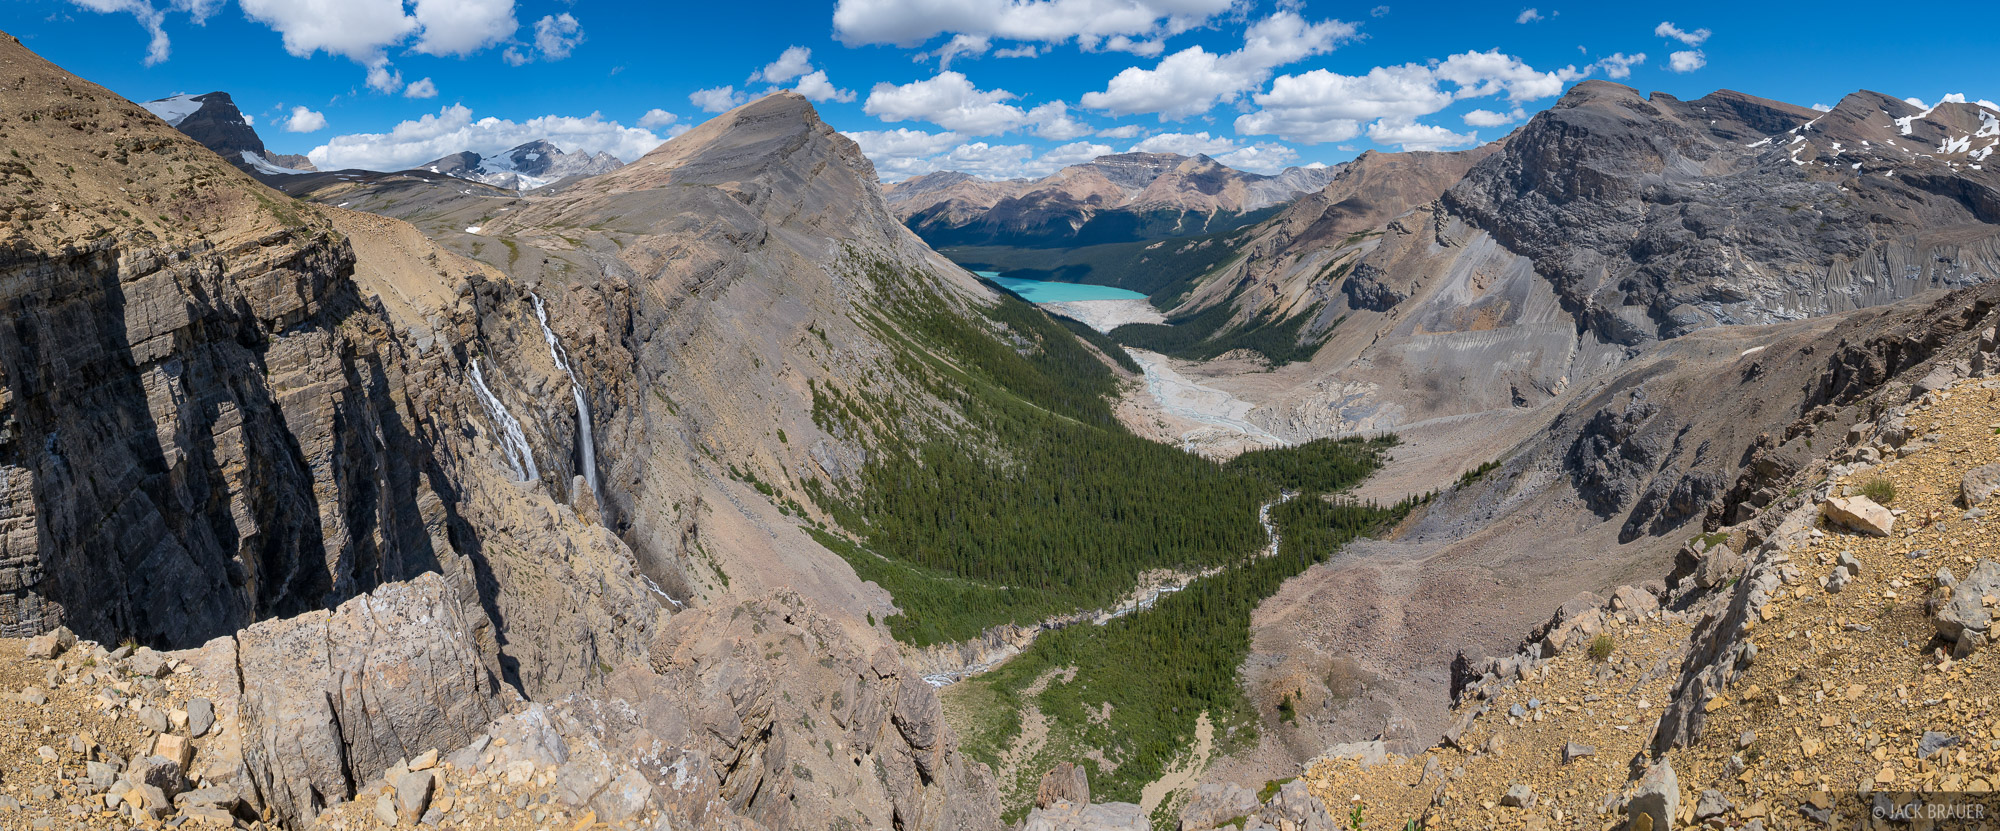 A panoramic view of the waterfall of Cauldron Creek, and the Peyto Creek valley, with Peyto Lake off in the distance.